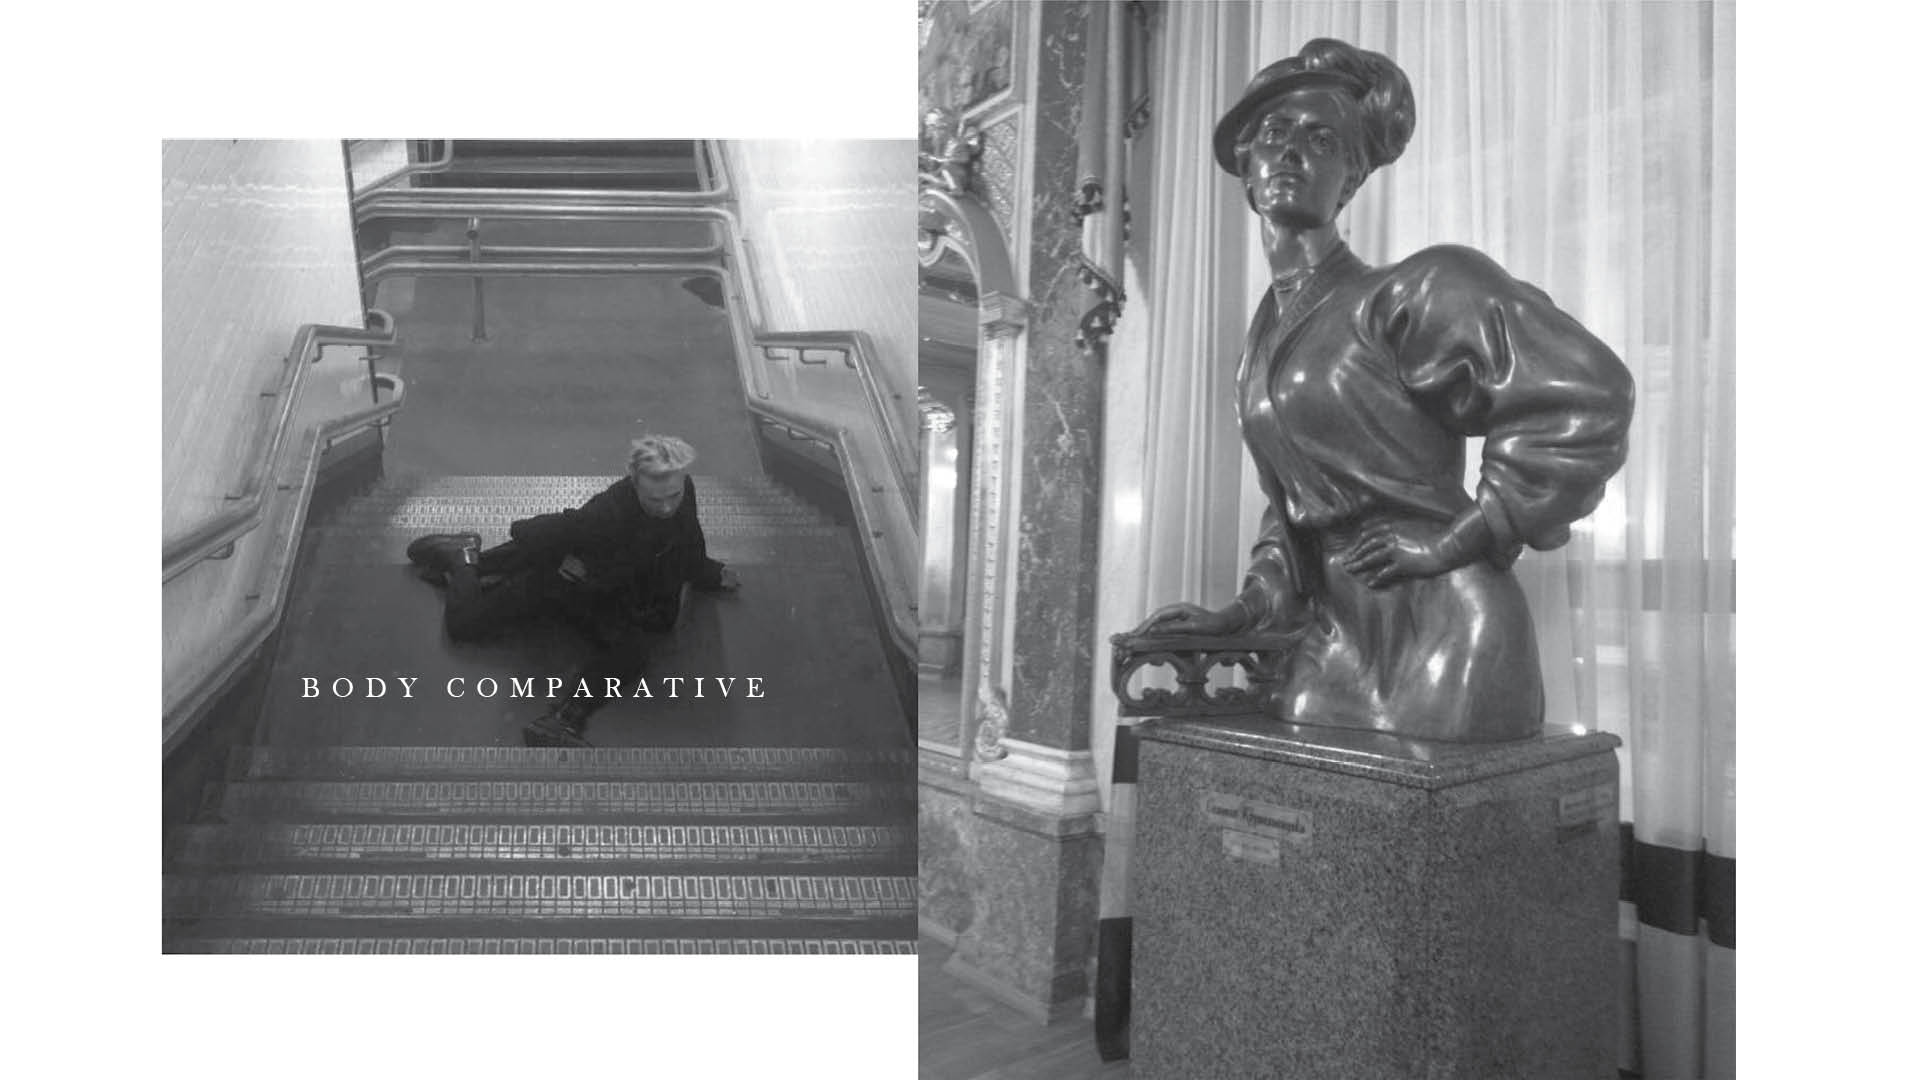 body comparative - DAPPER TAPPER 1